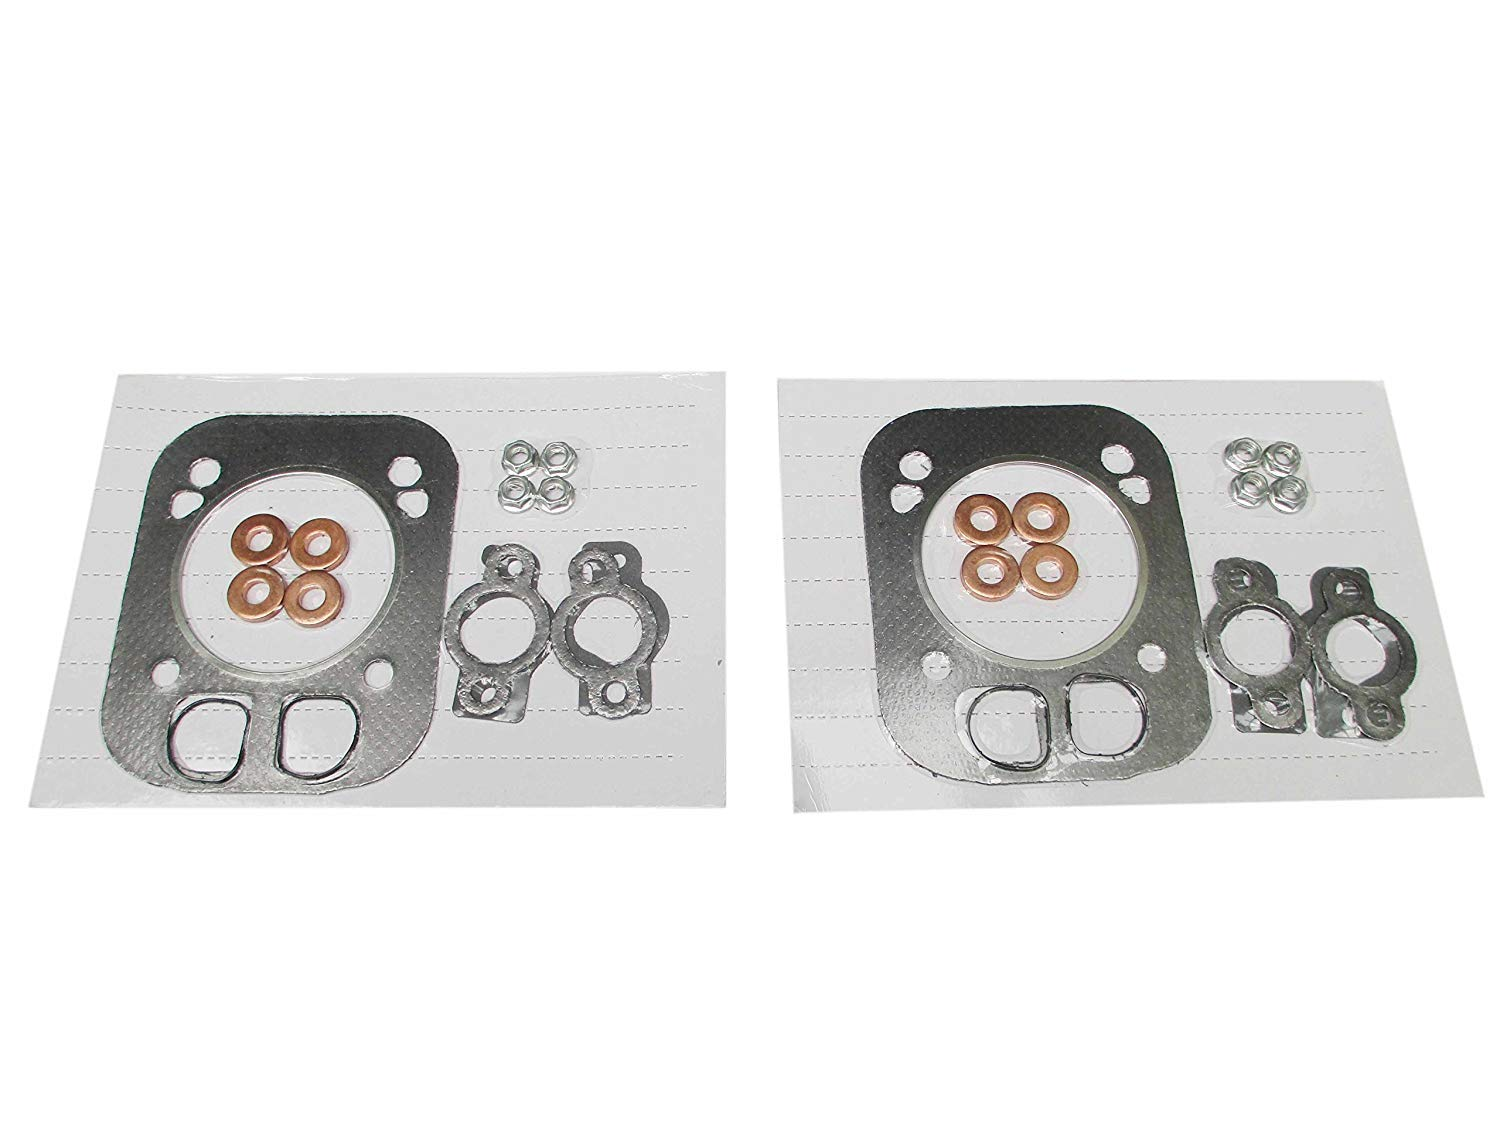 2 Set New AUTVAN Head Gasket Kit for Kohler CH25 CH730 CH740 24-841-04S 24 841 03S